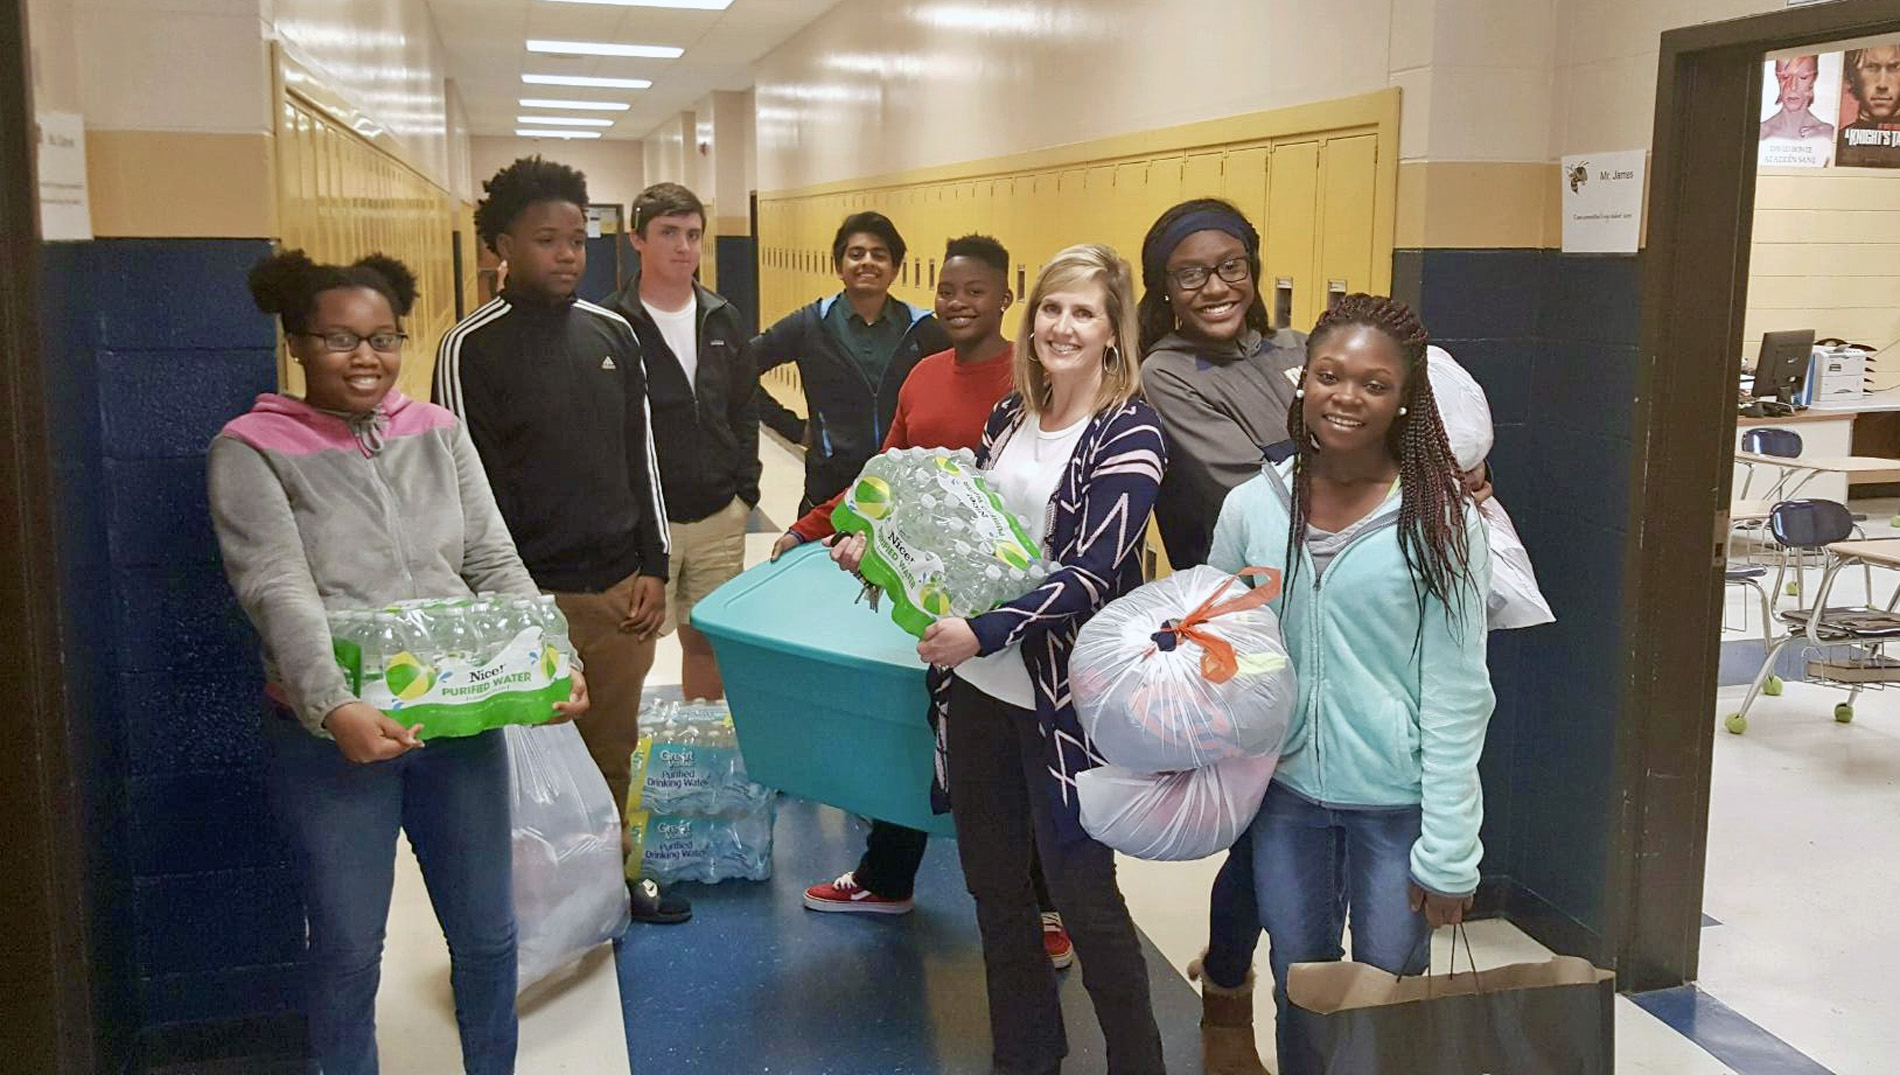 TCCHS students Charadi Paytee, Dondre Daniels, Blake Kirkendoll, Sanny Patel, Arina Warren, Leigh Barwick (teacher), Ilyria Johns, and Eurica Bush pause for the camera with some of the donated items.